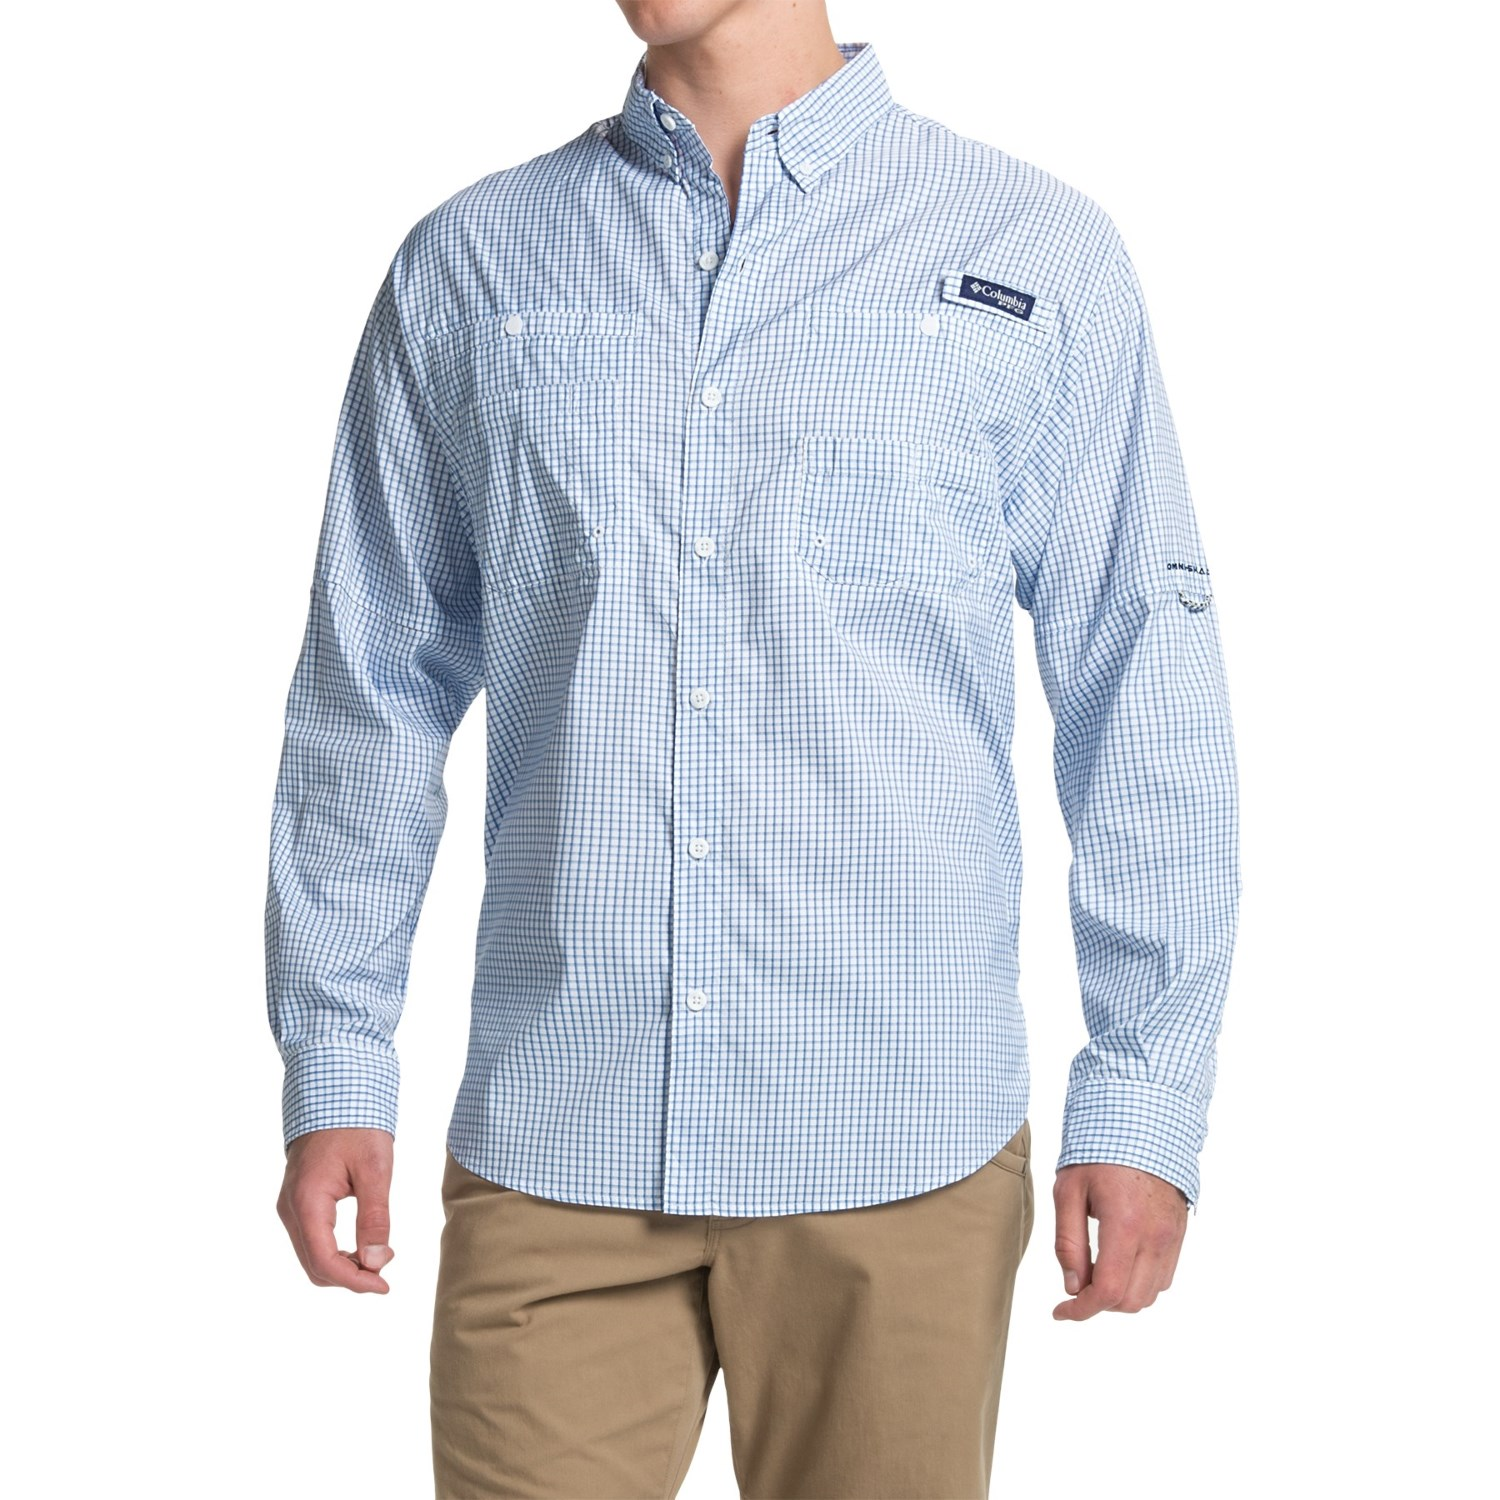 Columbia sportswear pfg super tamiami fishing shirt for men for Mens fishing shirts